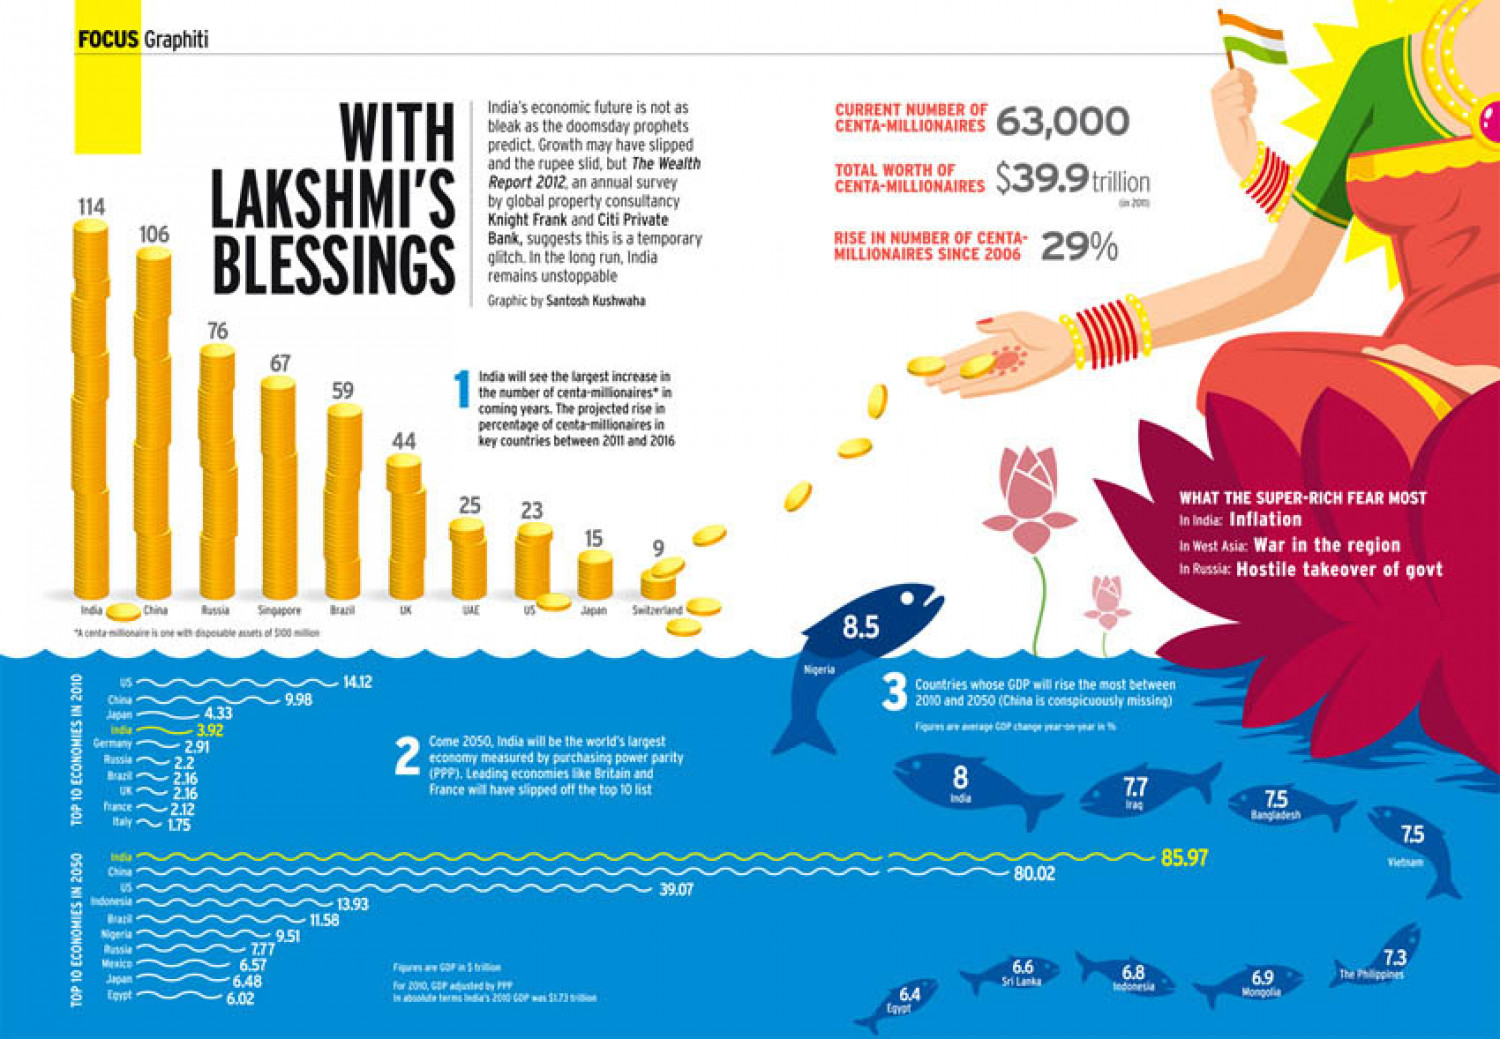 WITH LAKSHMI'S BLESSINGS Infographic